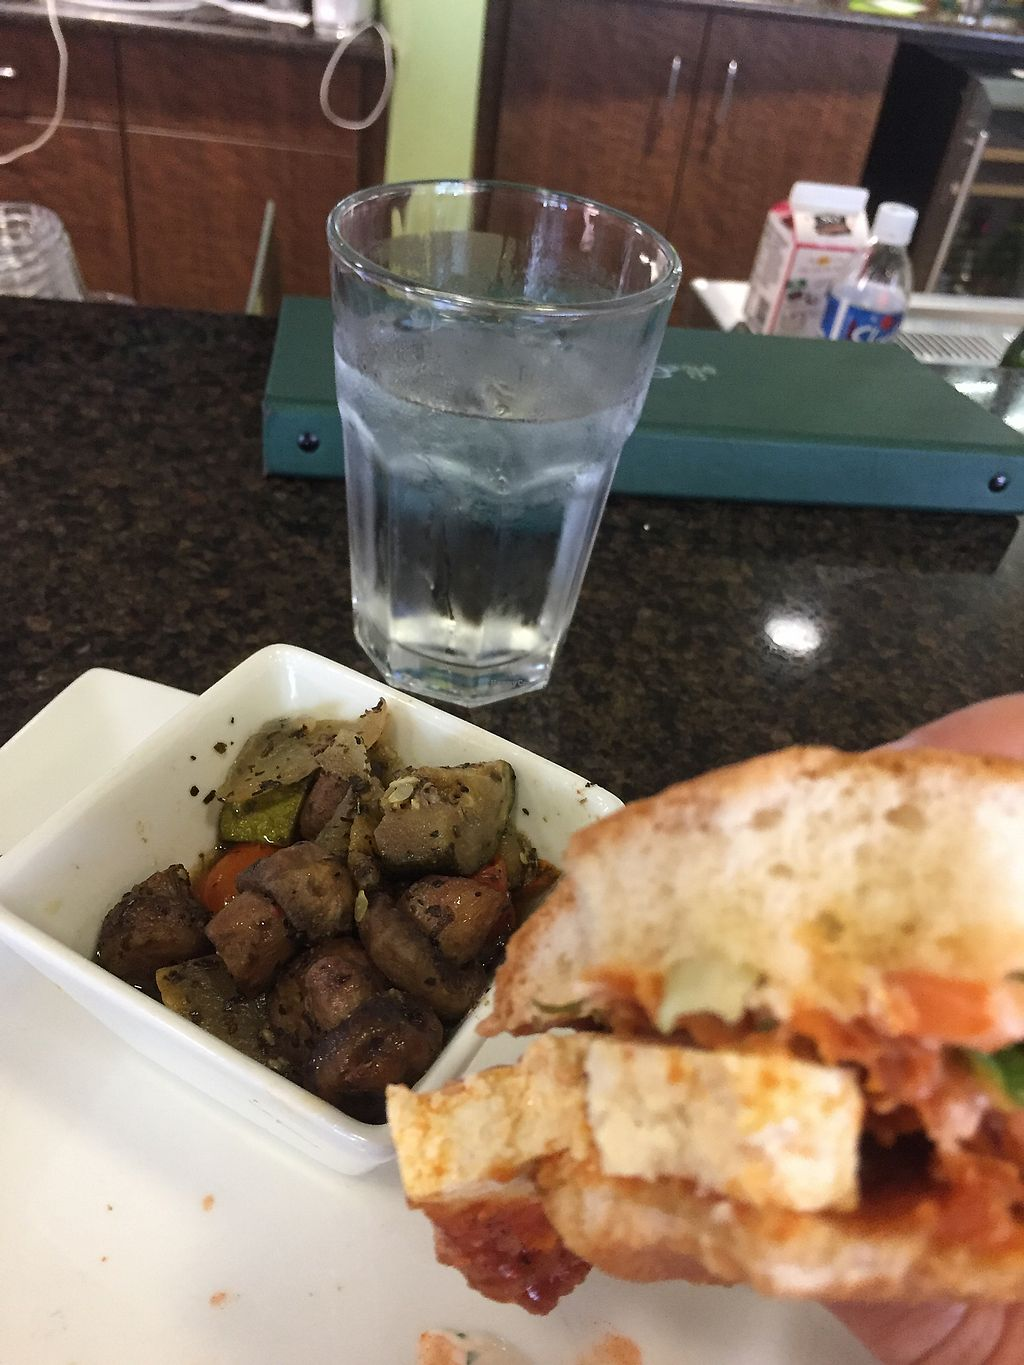 """Photo of Good Life Cafe  by <a href=""""/members/profile/sopranonerd"""">sopranonerd</a> <br/>Buffalo Chicken-less sandwich and grilled veggies <br/> August 23, 2017  - <a href='/contact/abuse/image/26543/296428'>Report</a>"""